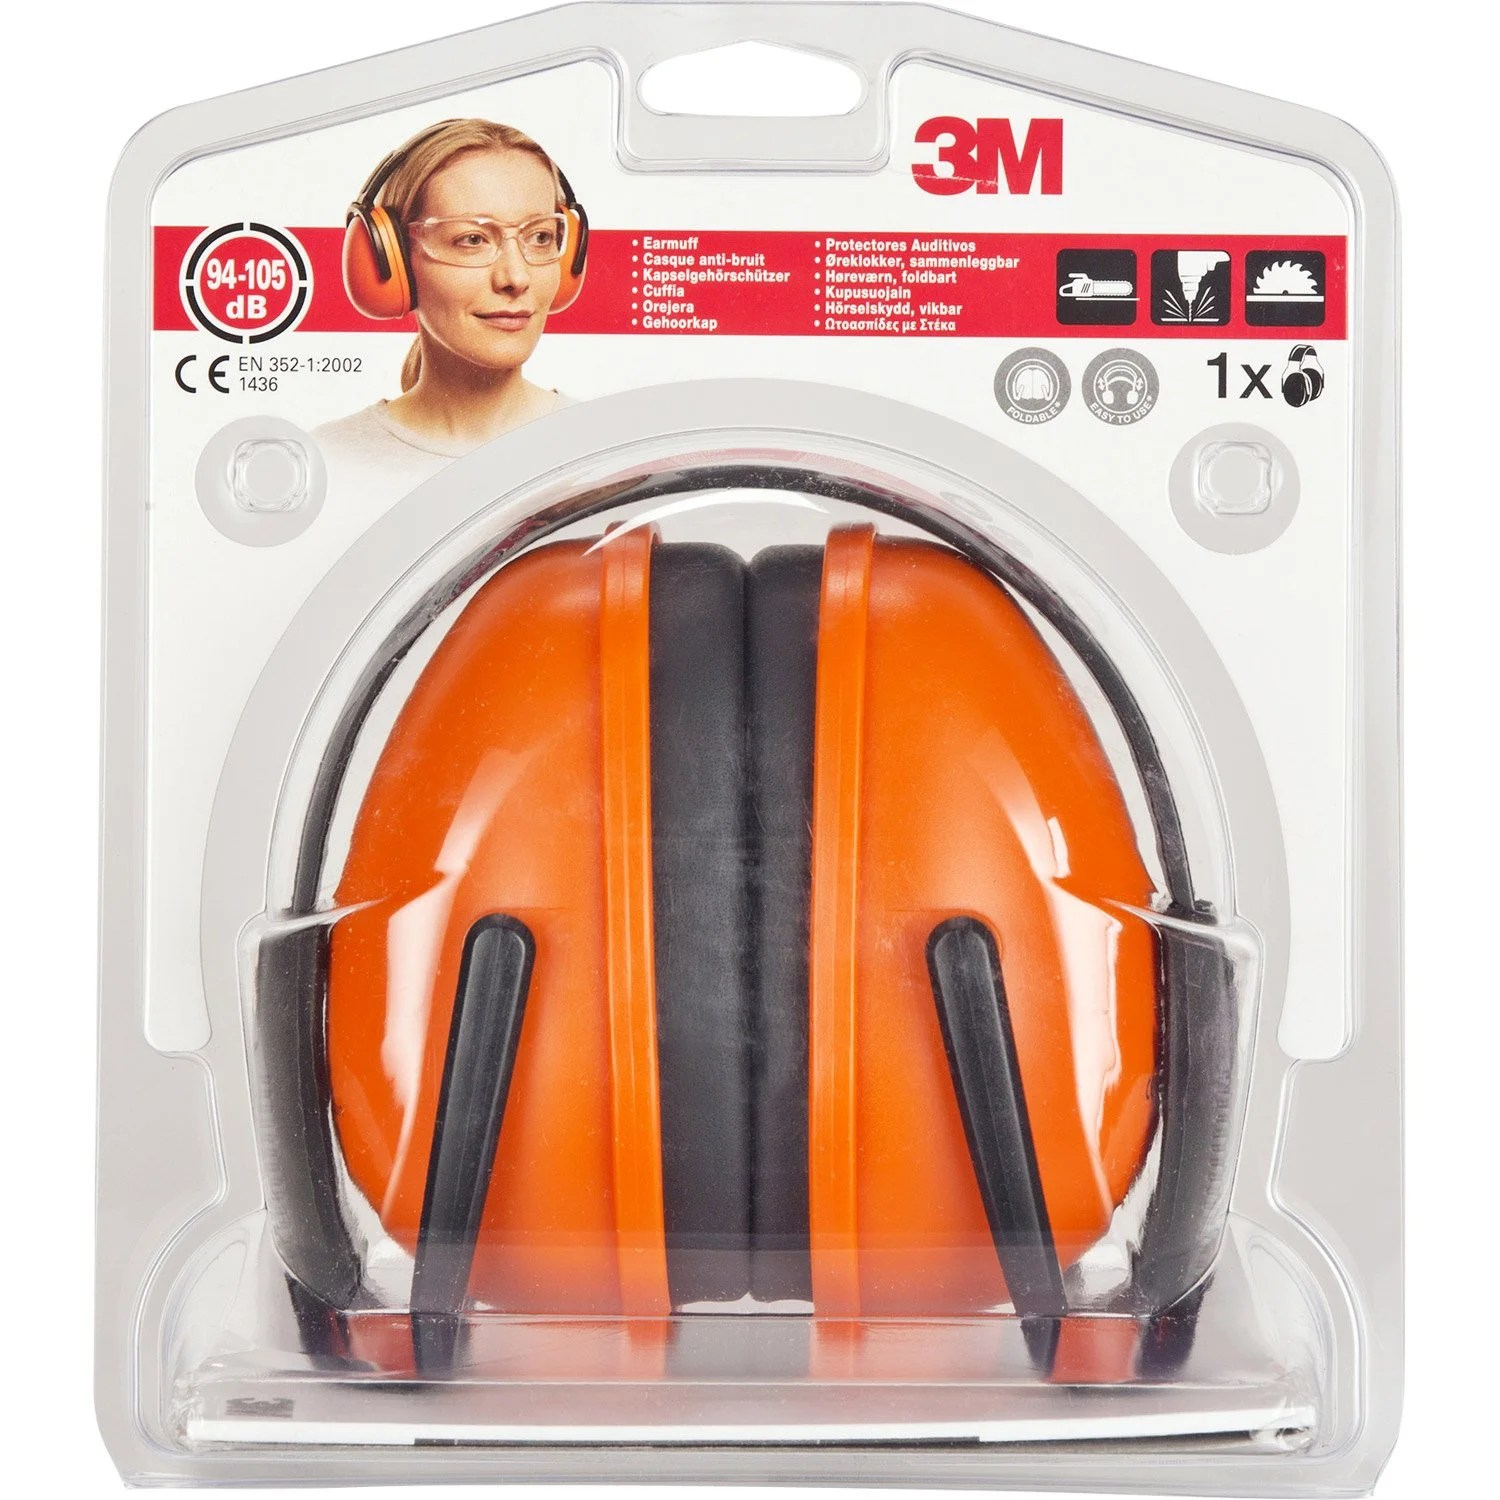 Spa Exterieur Bruit Arceau Antibruit Pliable Antibruit 3m Casque Auditif